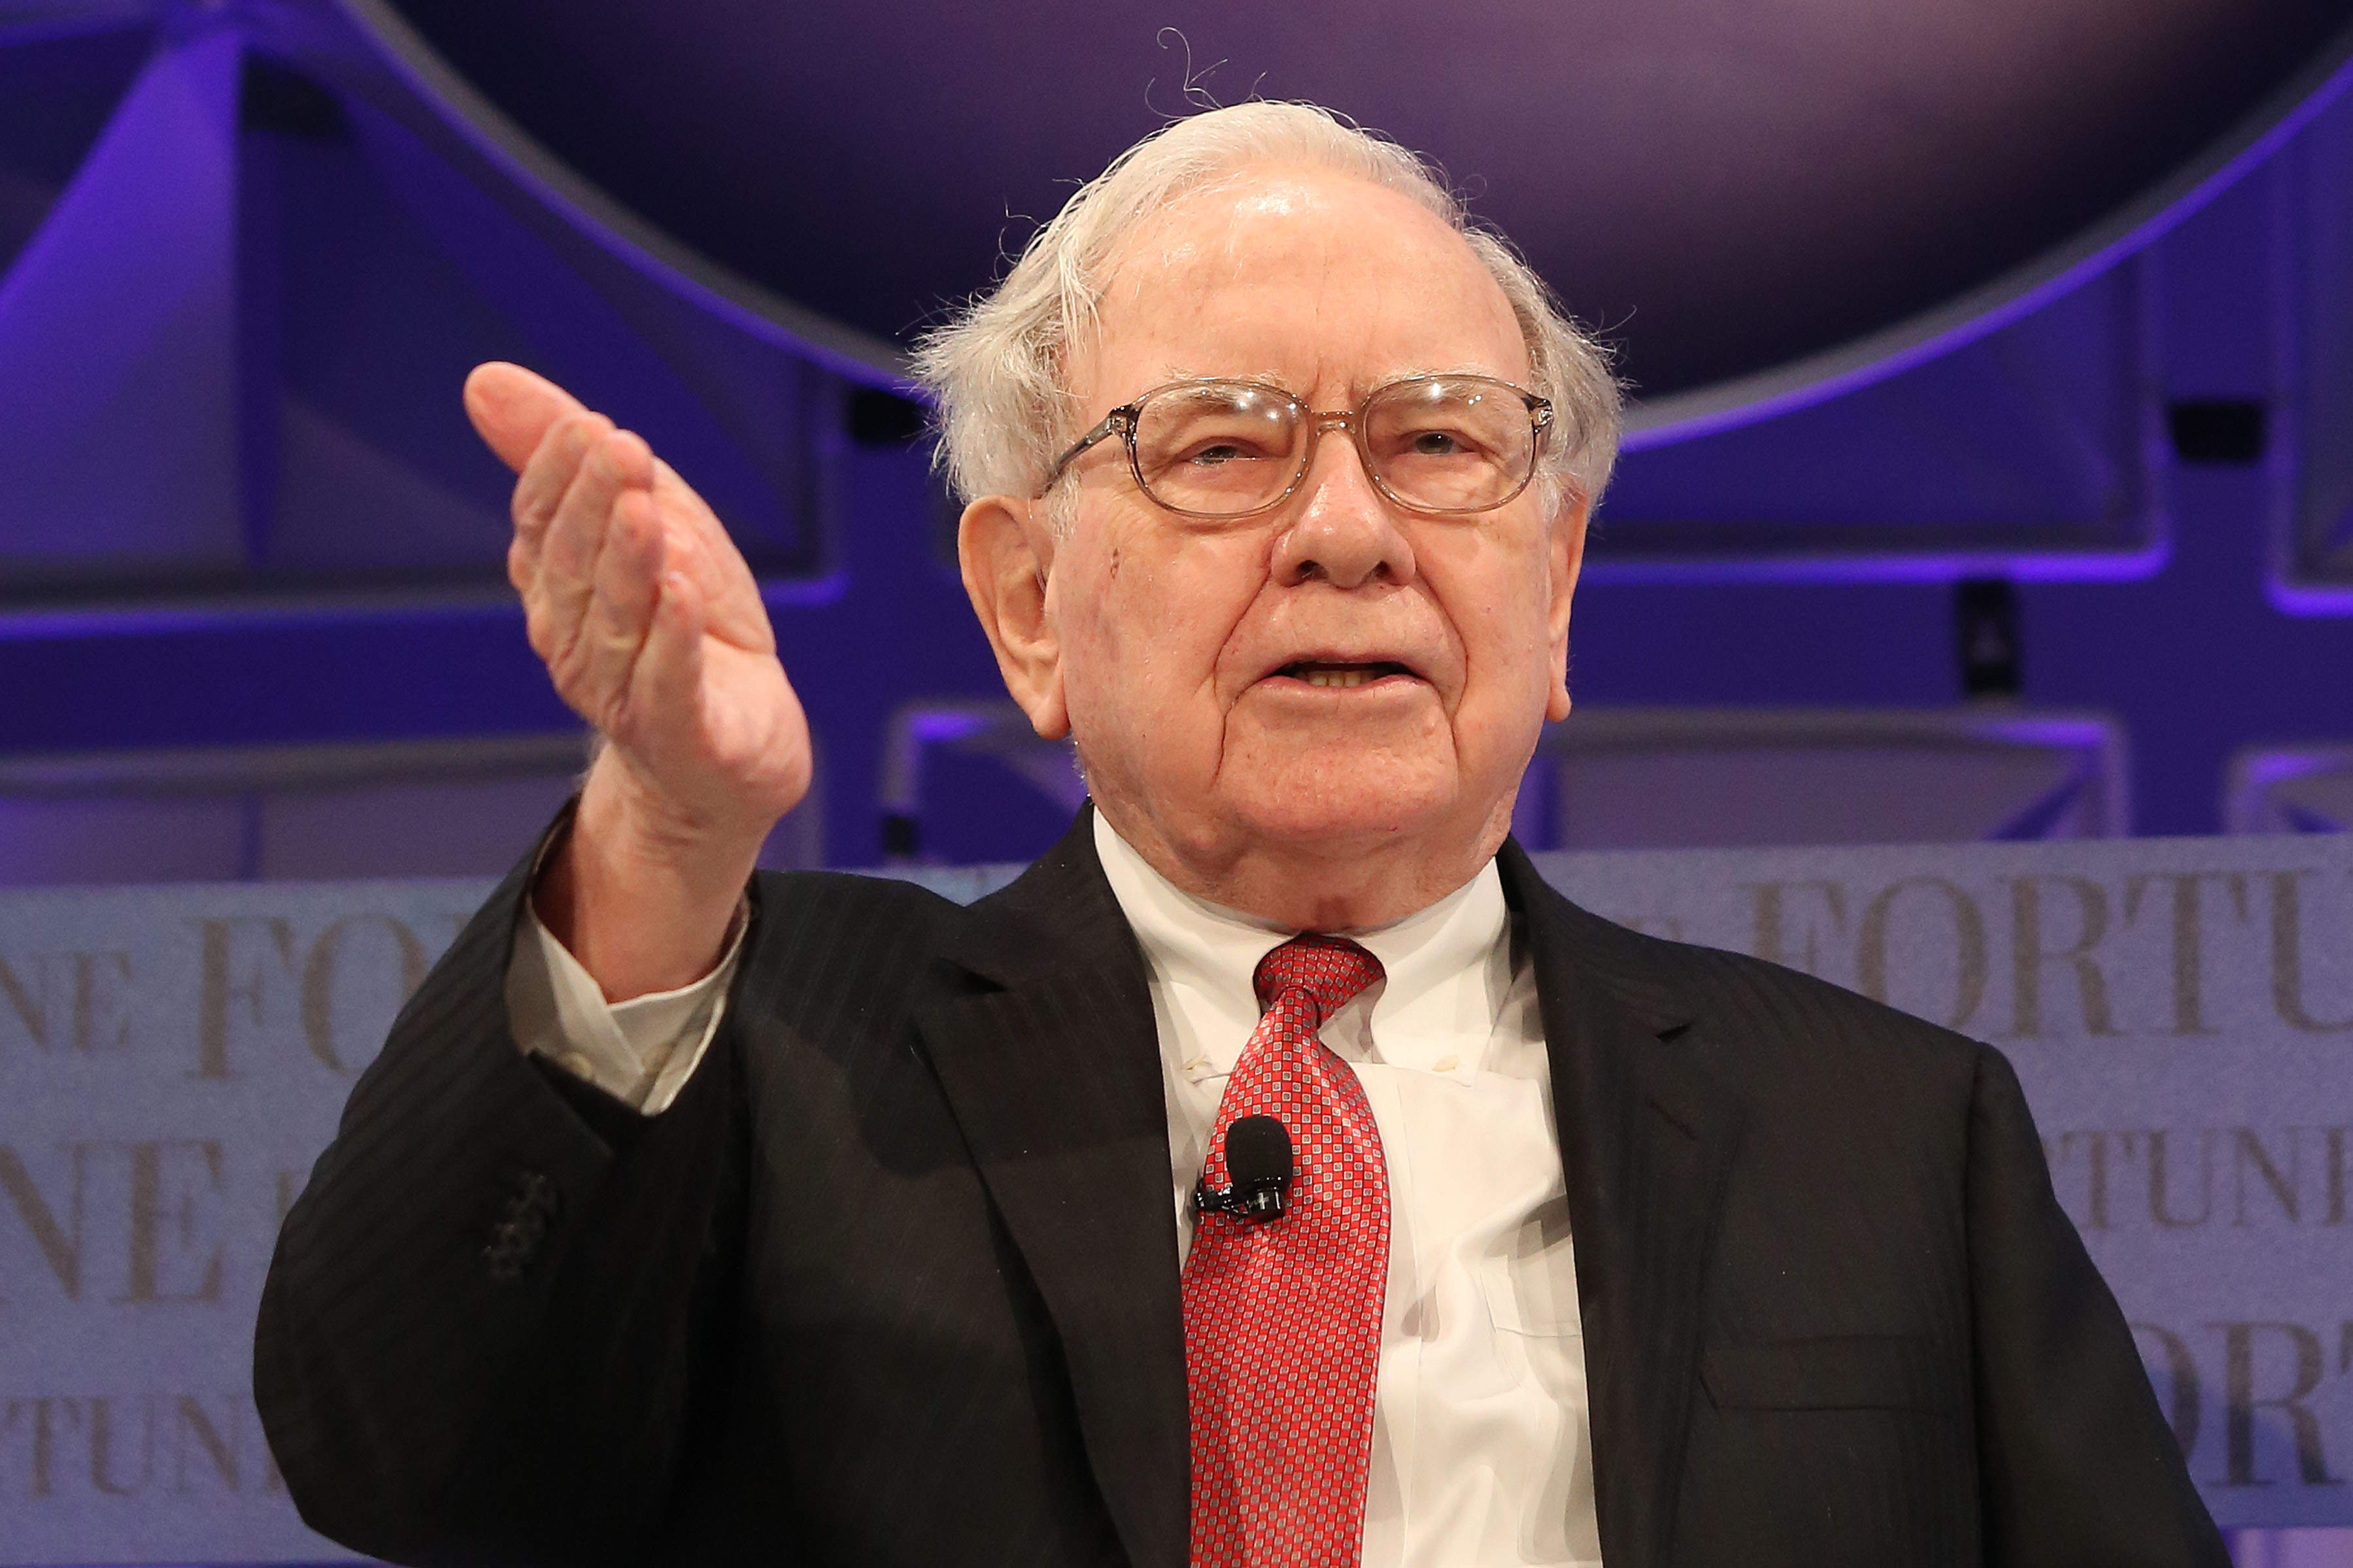 Berkshire Hathaway has so much money that Warren Buffett doesn't know how to spend it